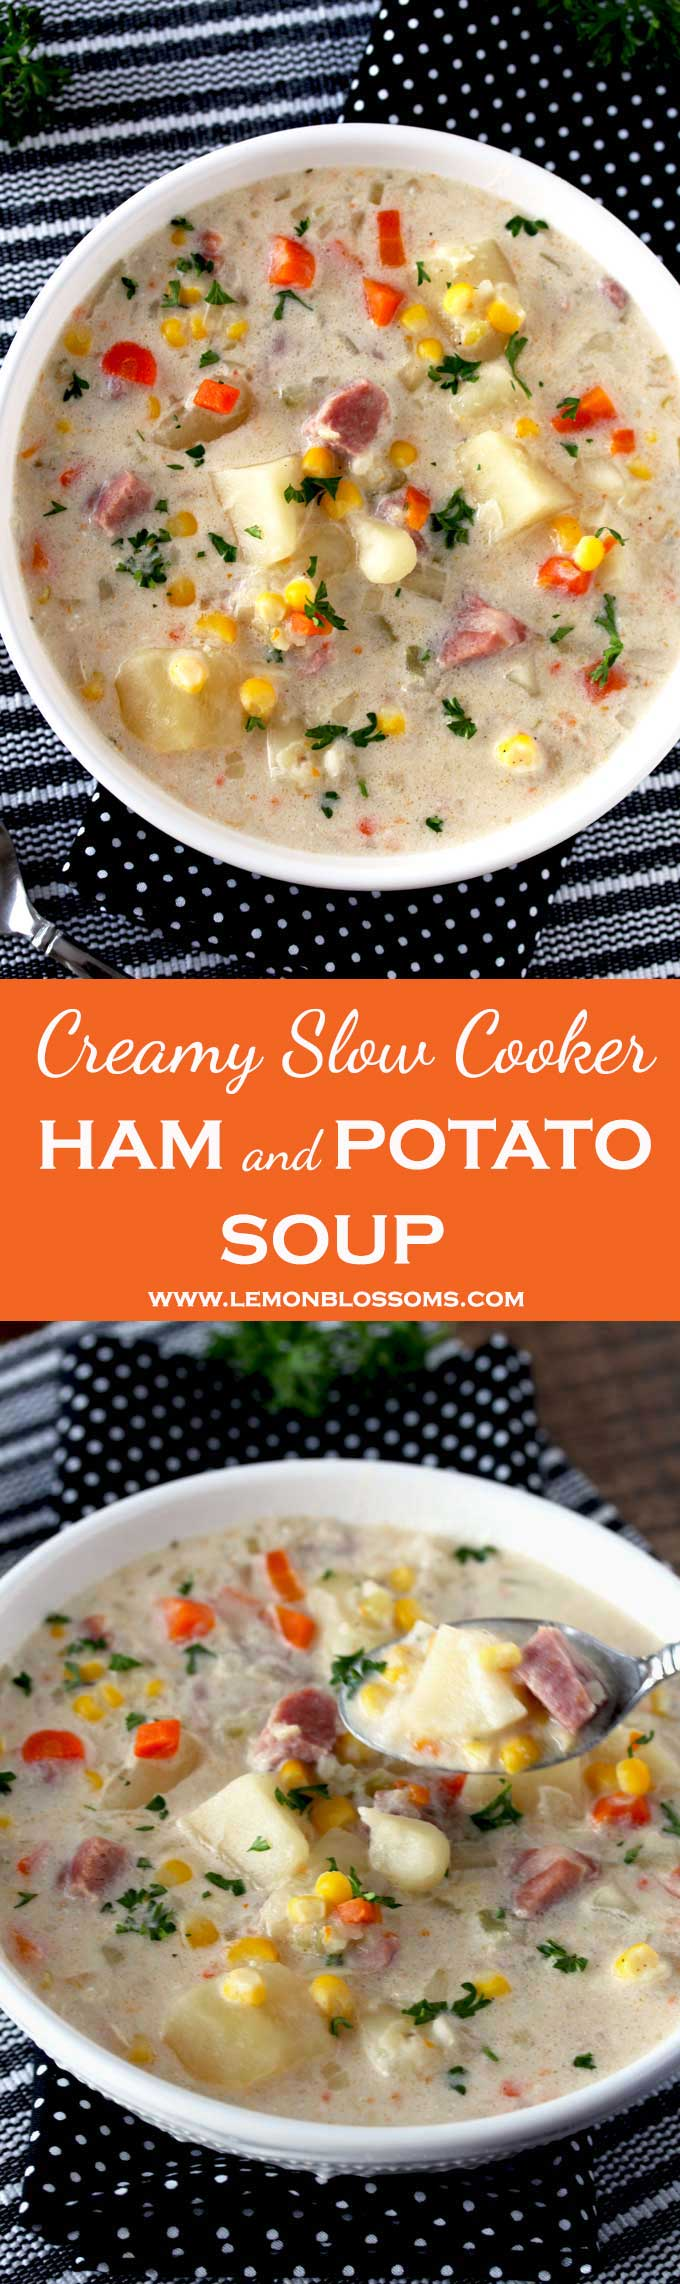 This Slow Cooker Ham and Potato Soup is hearty and creamy. Loaded with ham, potatoes and veggies and finished with a bit of cream and sour cream for richness. This easy everyday meal is pure comfort food. #soup #glutenfree #slowcooker